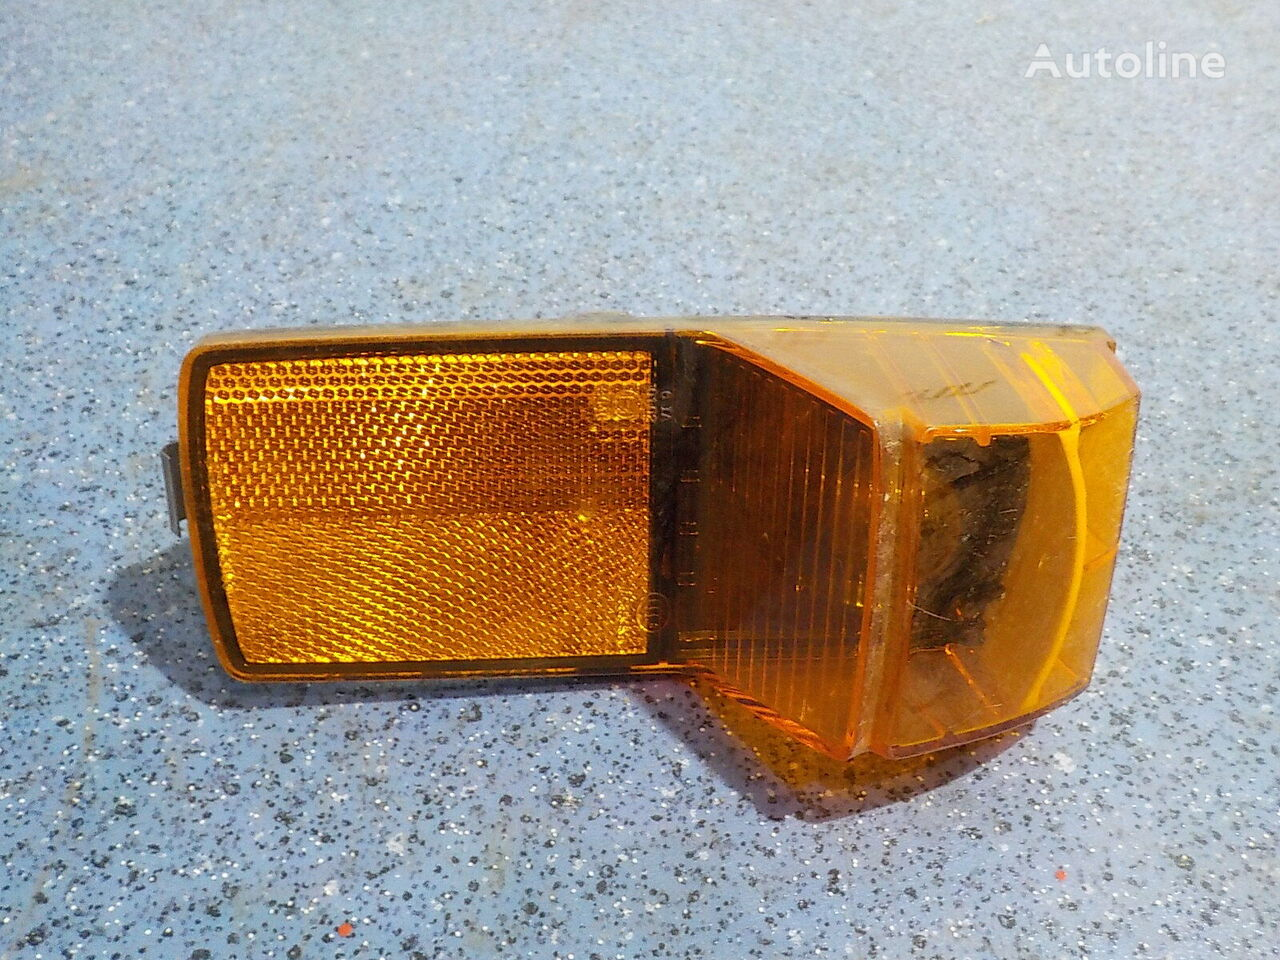 turn signal for SCANIA truck